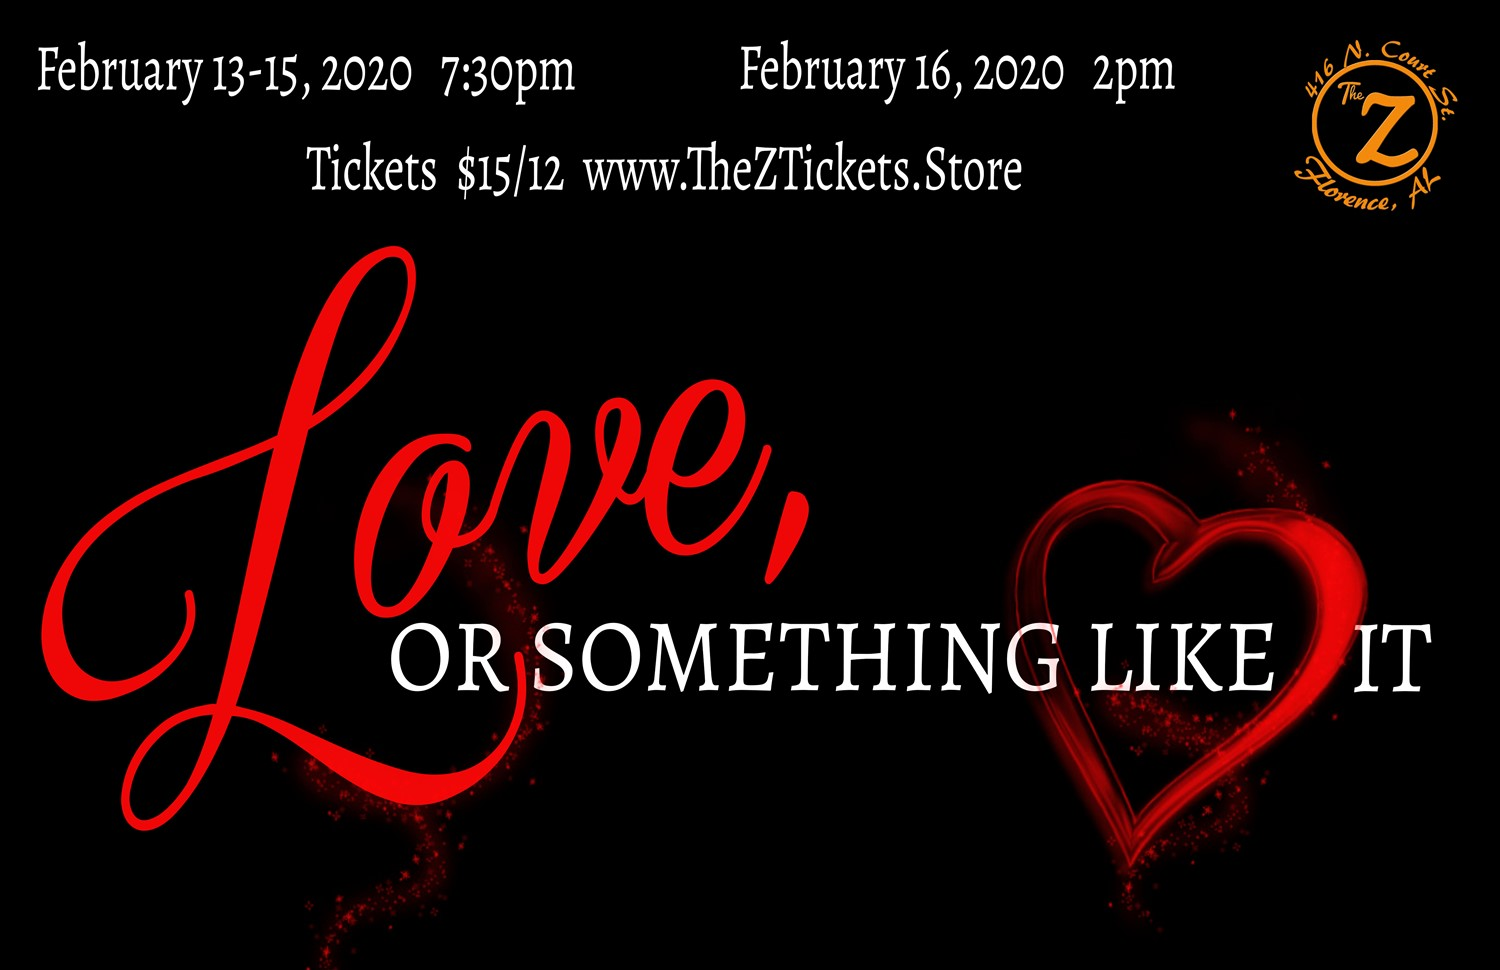 Love, or Something Like It  on Feb 18, 00:00@The Z - Pick a seat, Buy tickets and Get information on Historic Zodiac Playhouse